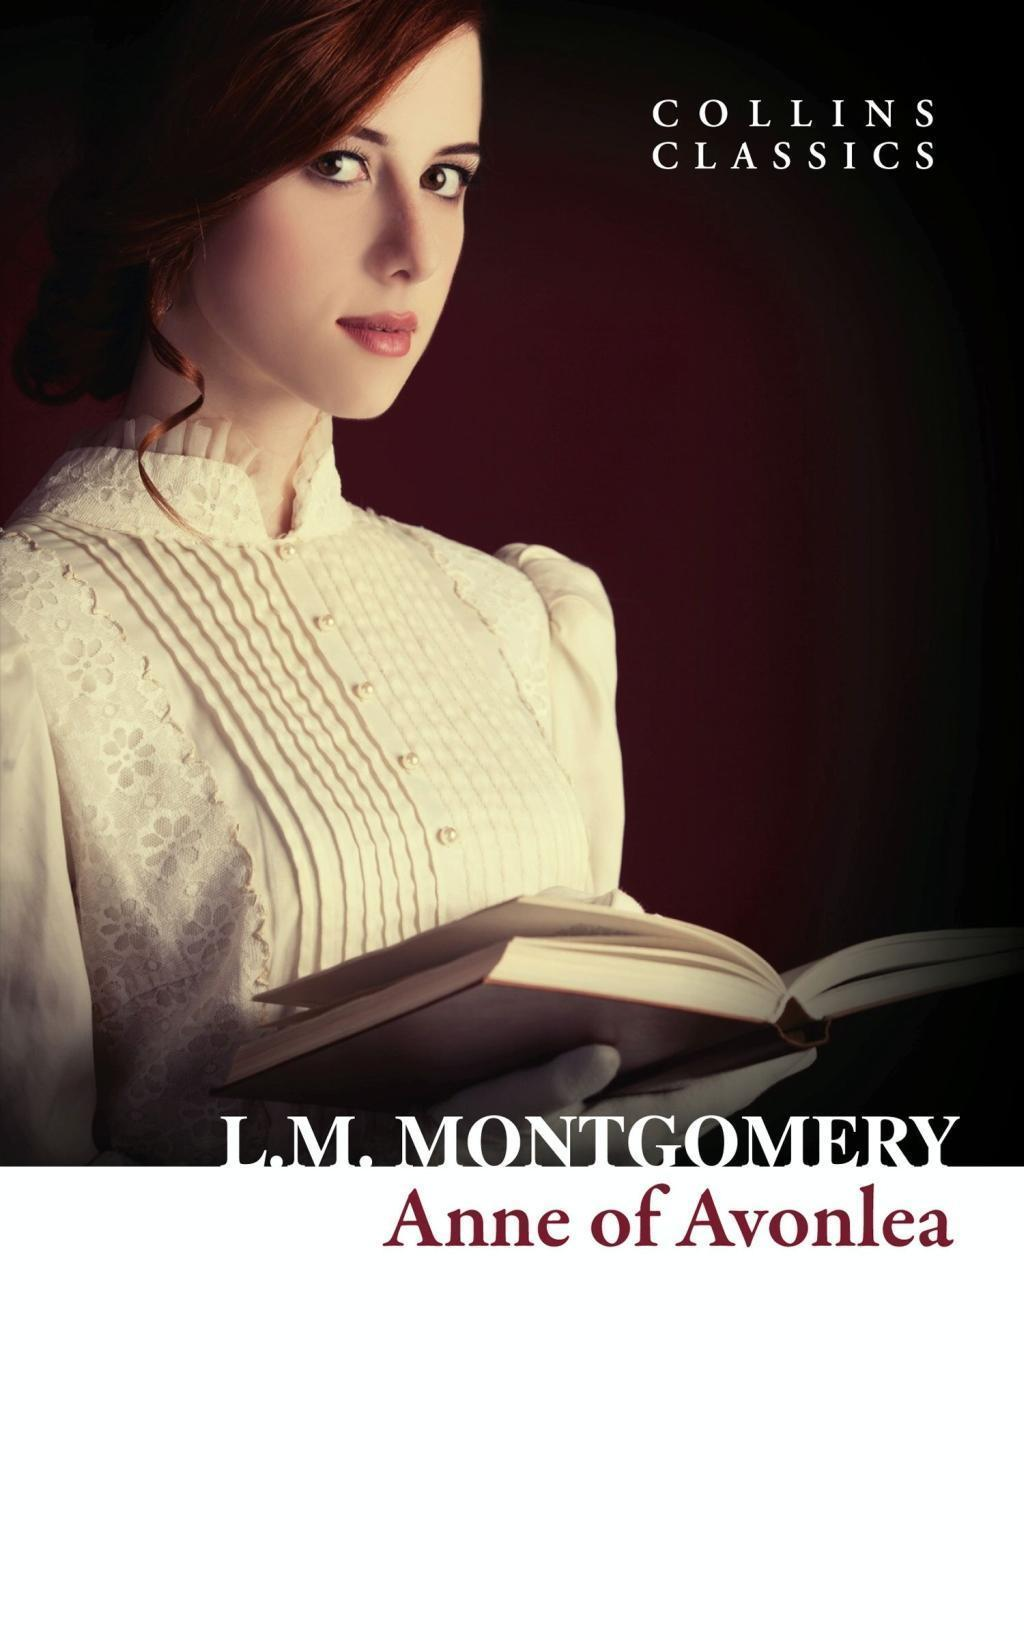 Anne of Avonlea (Collins Classics)